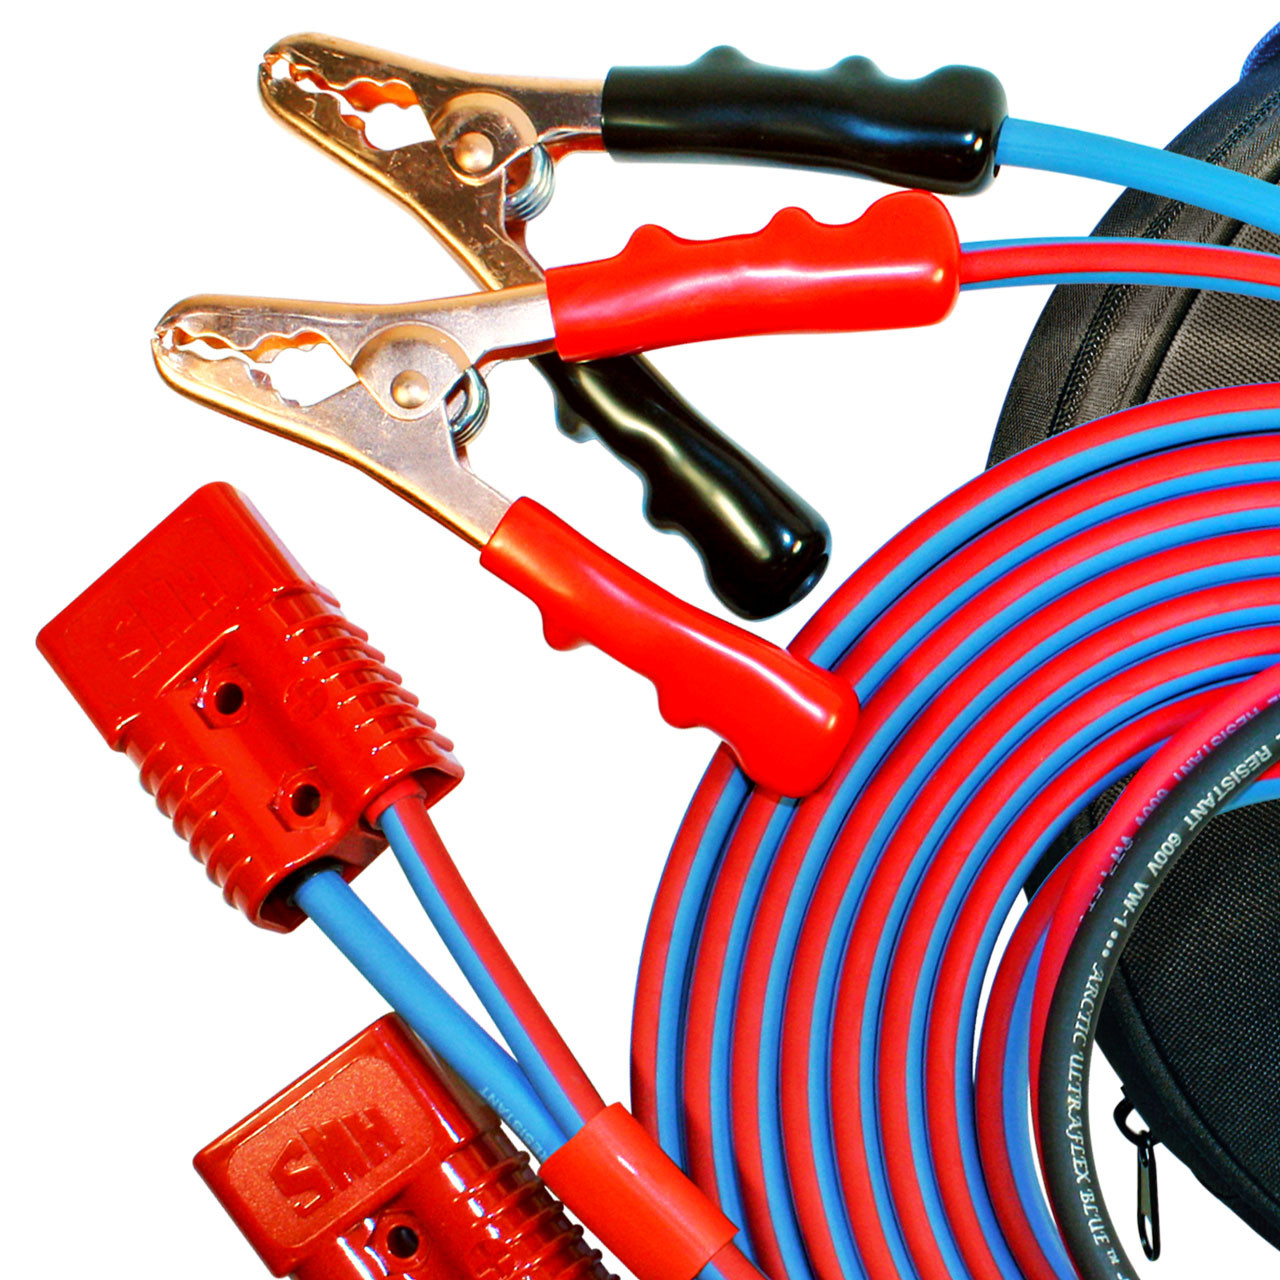 The very best jumper cables available anywhere! 4 gauge, 2 foot clamp style battery booster cables